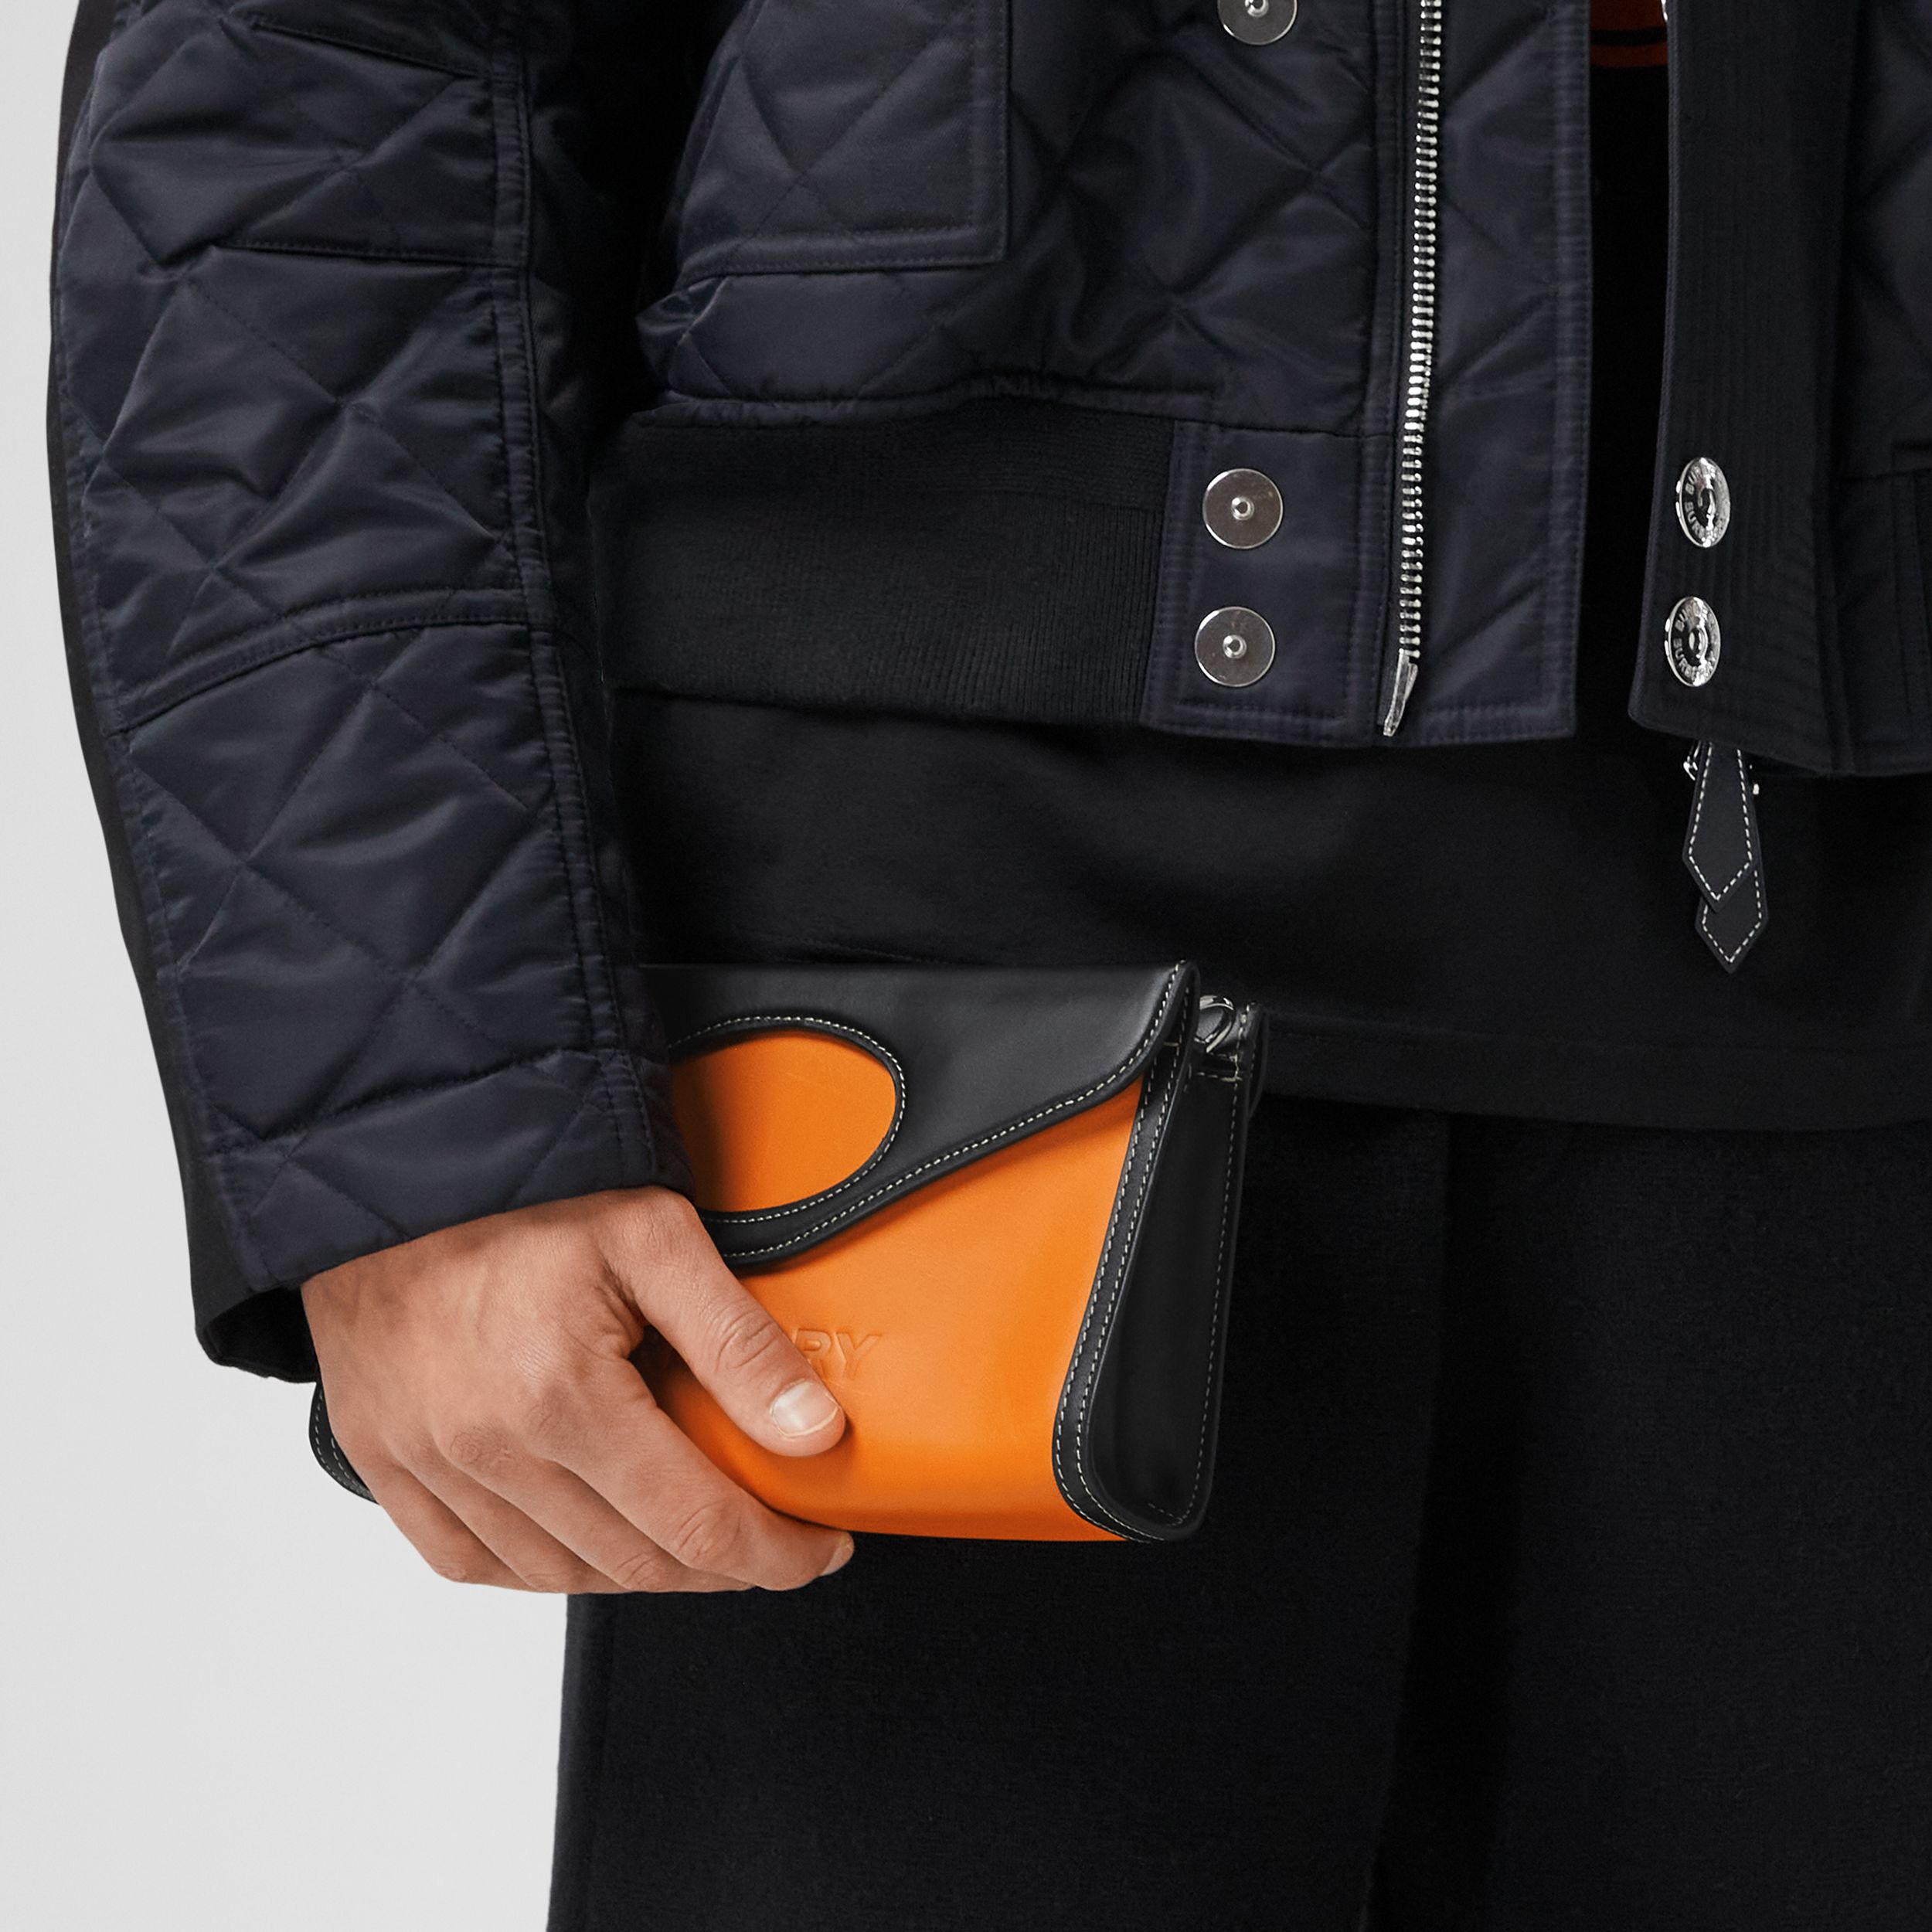 Two-tone Leather Foldover Pocket Bag in Deep Orange/black - Men | Burberry Canada - 4